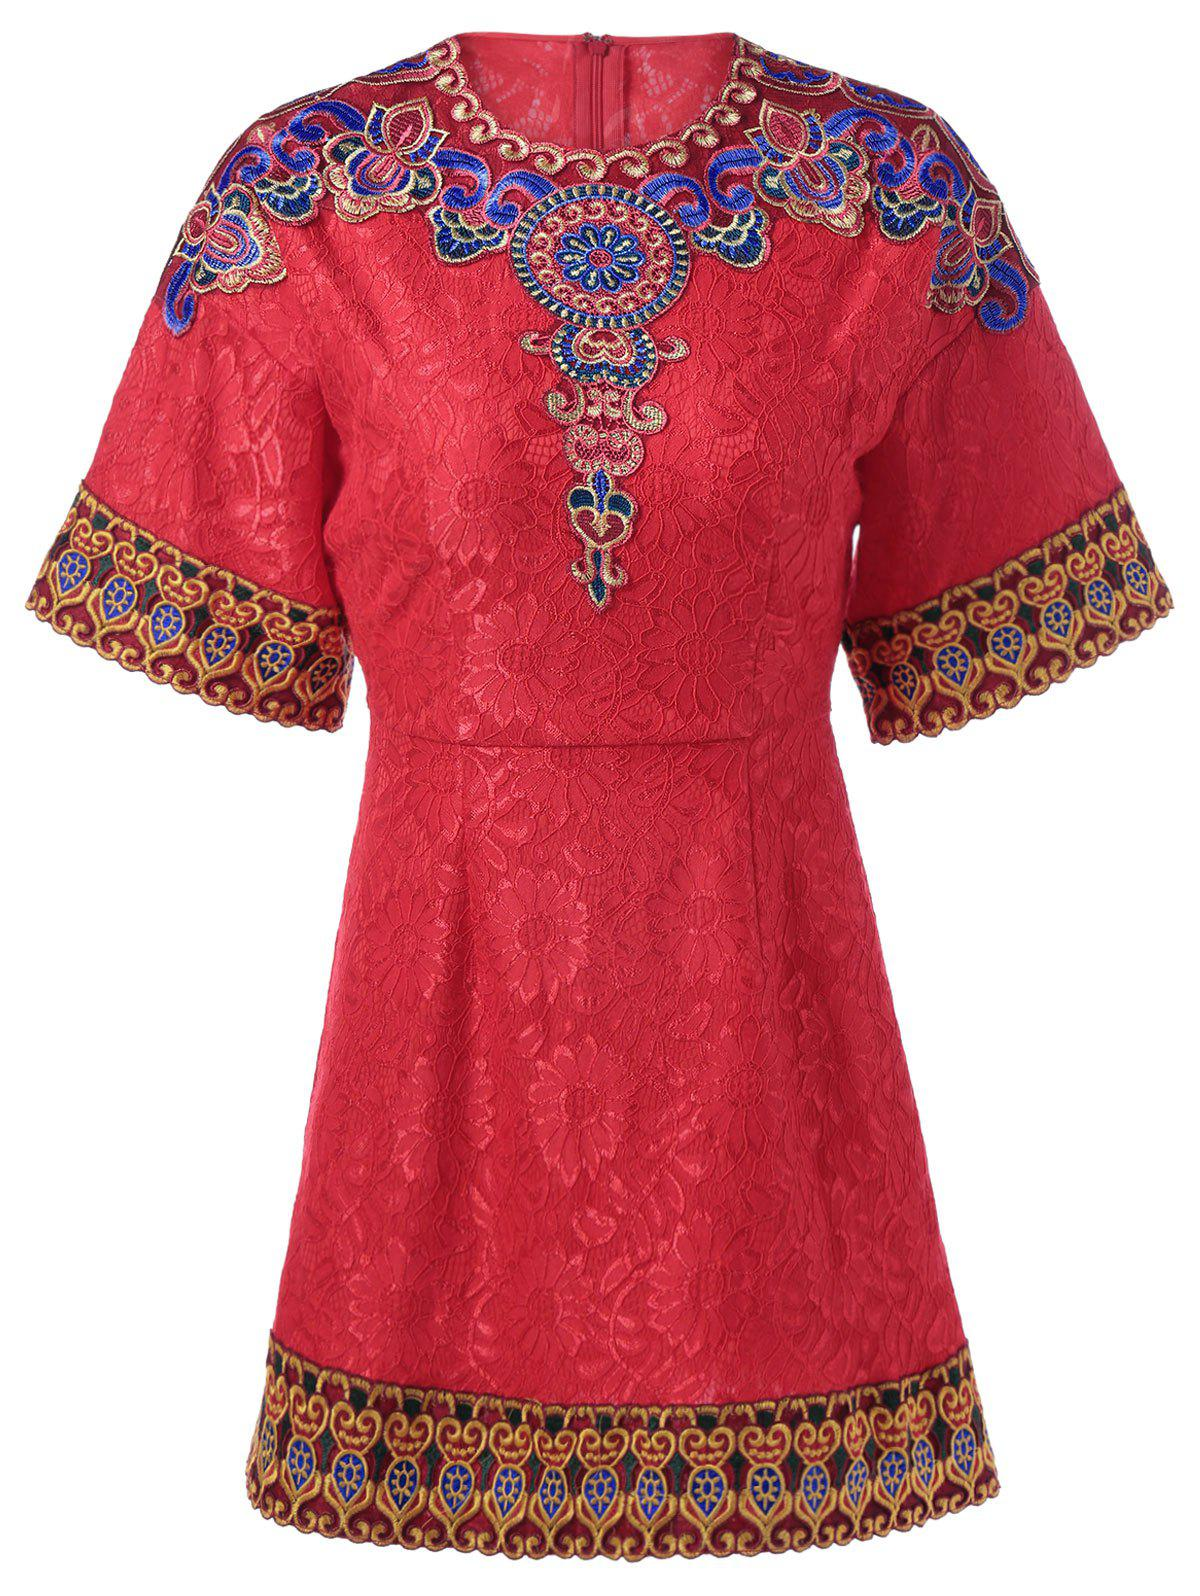 Ethnic Jacquard Embroidery Dress